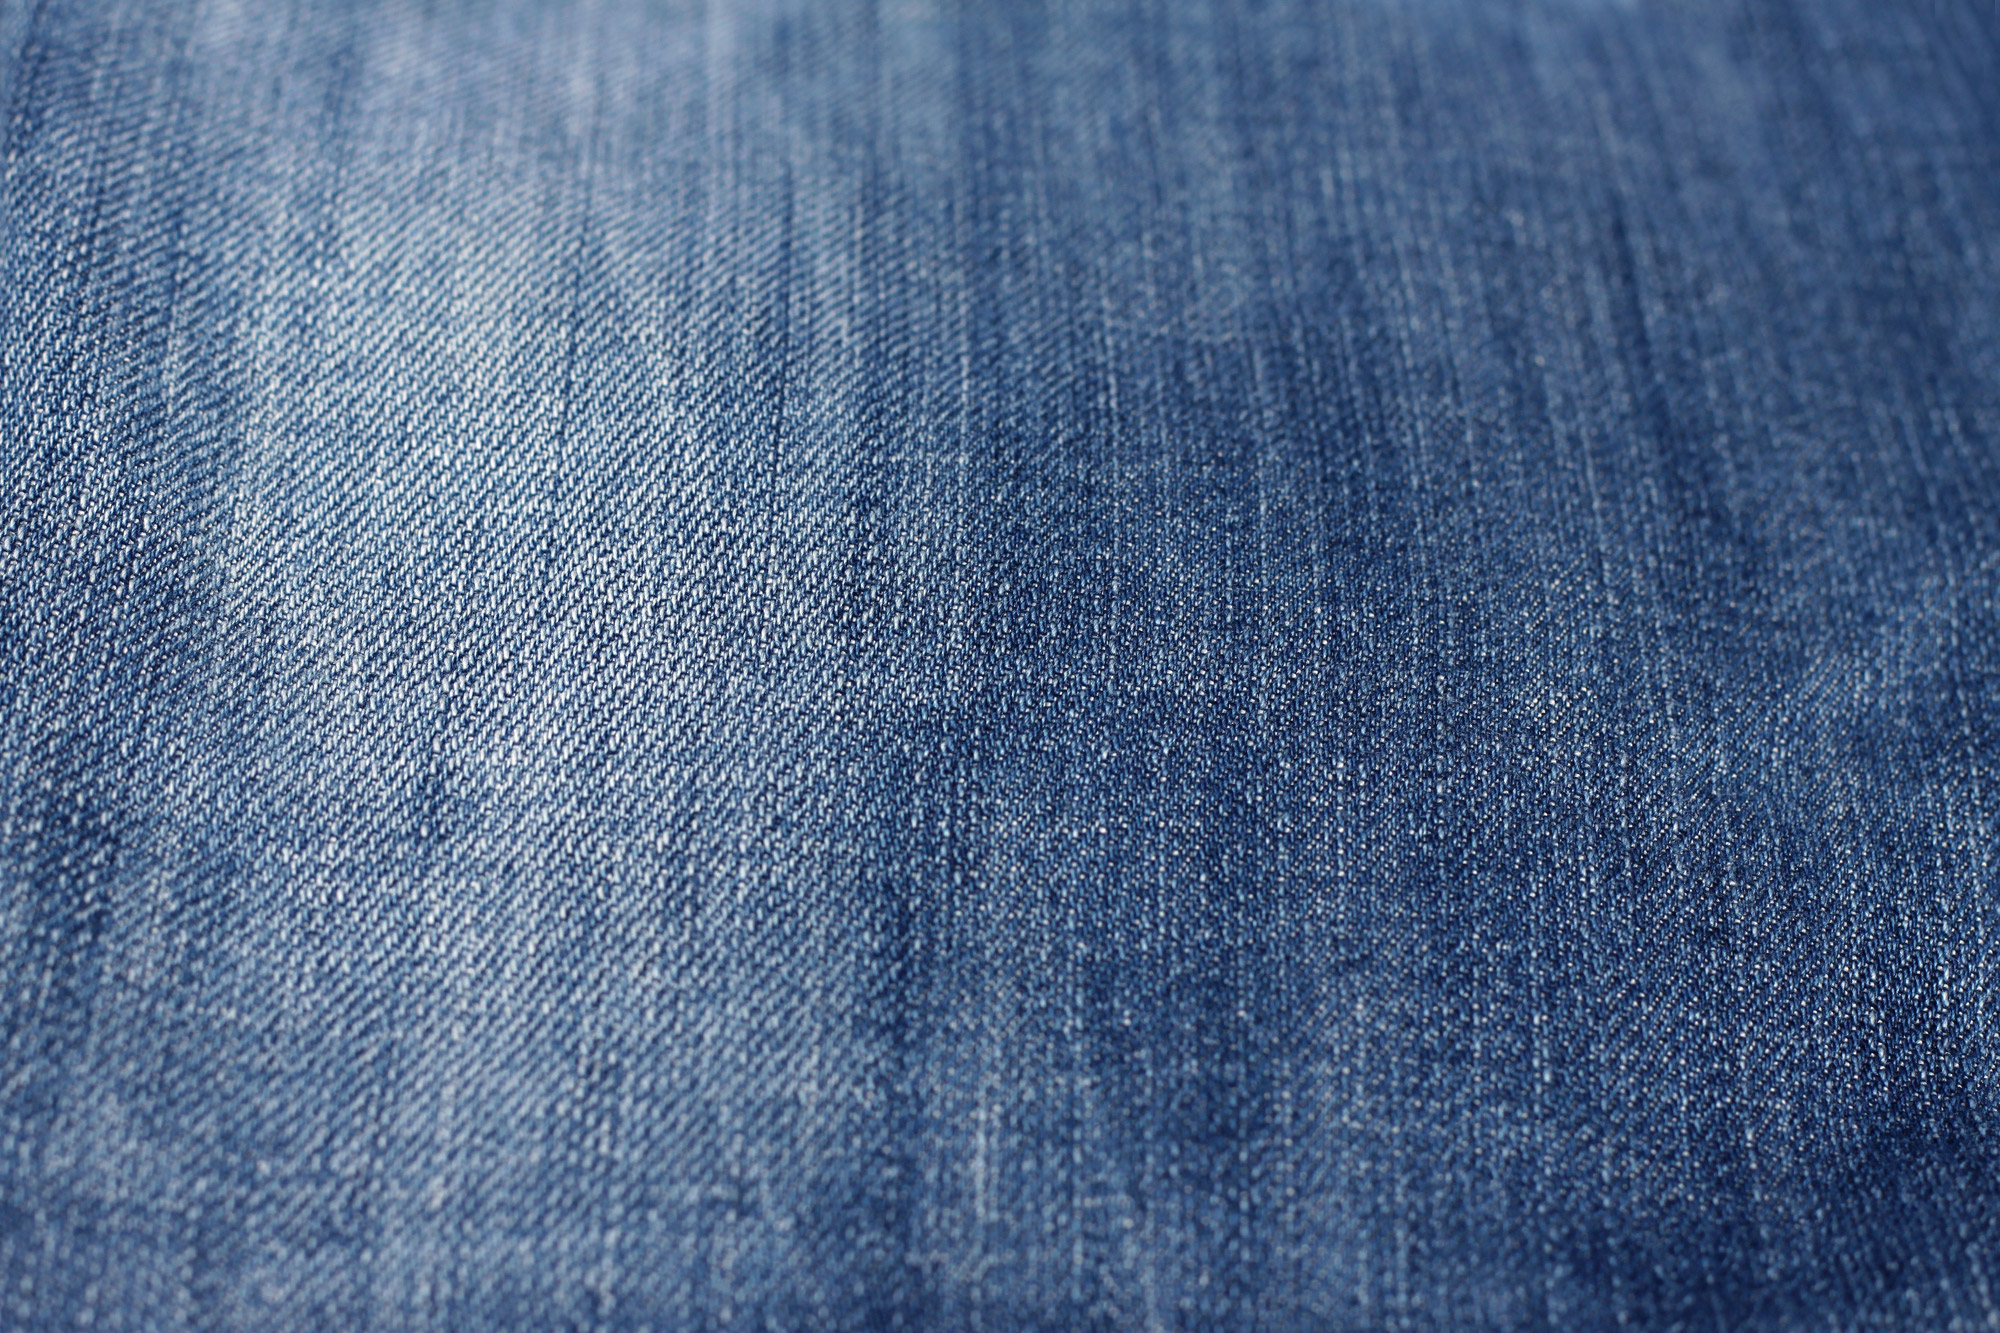 Jeans Trousers Fabric